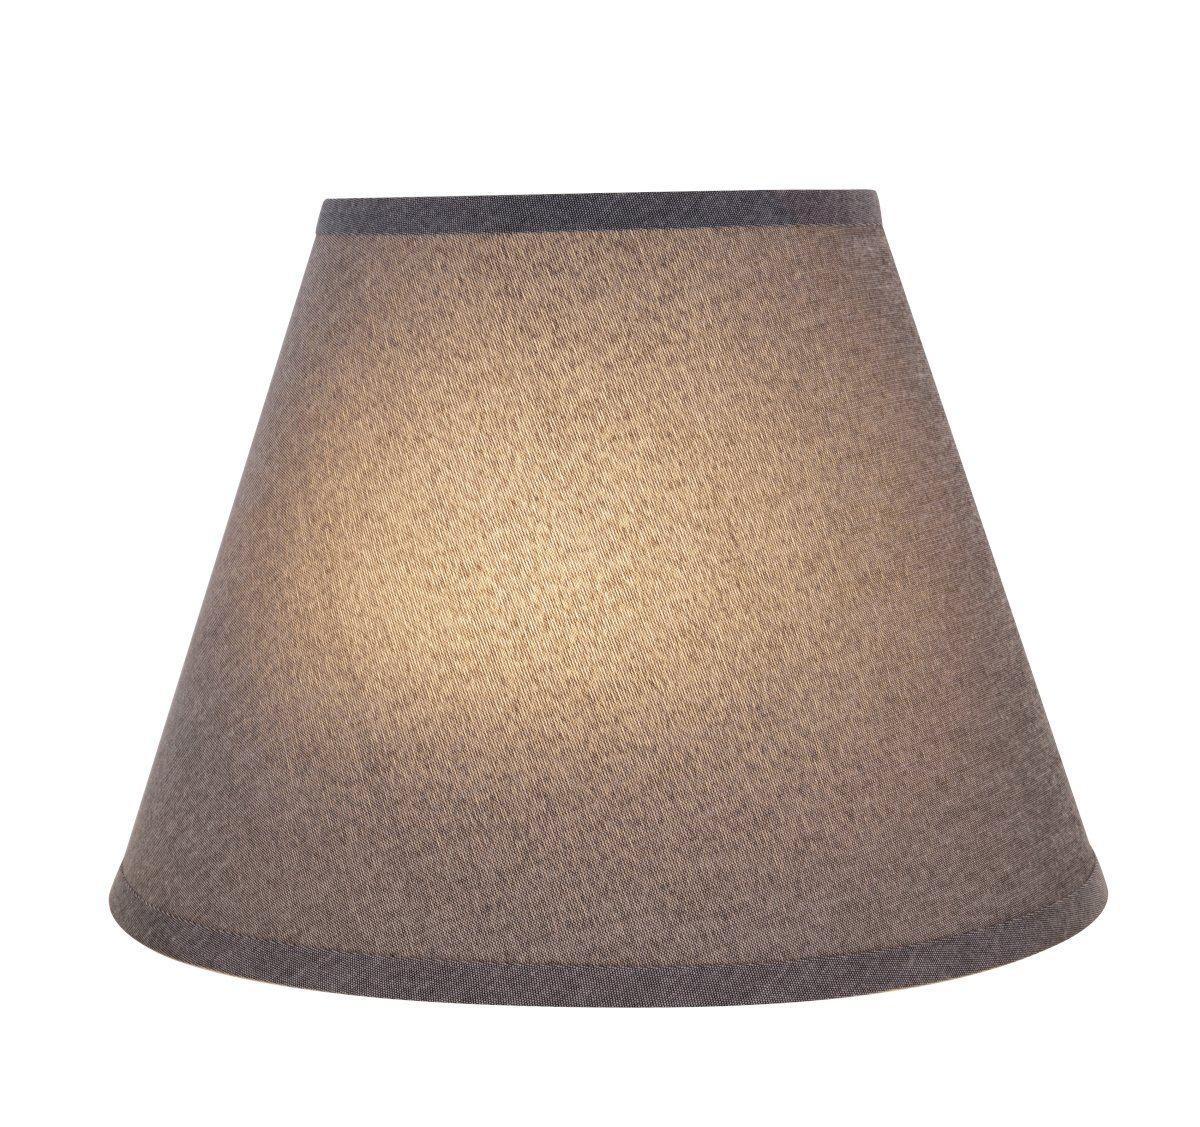 Aspen Creative 32181 Transitional Hardback Empire Shape Spider Construction Lamp Shade in Grey, 13'' wide (7'' x 13'' x 9 1/2'') by Aspen Creative (Image #3)